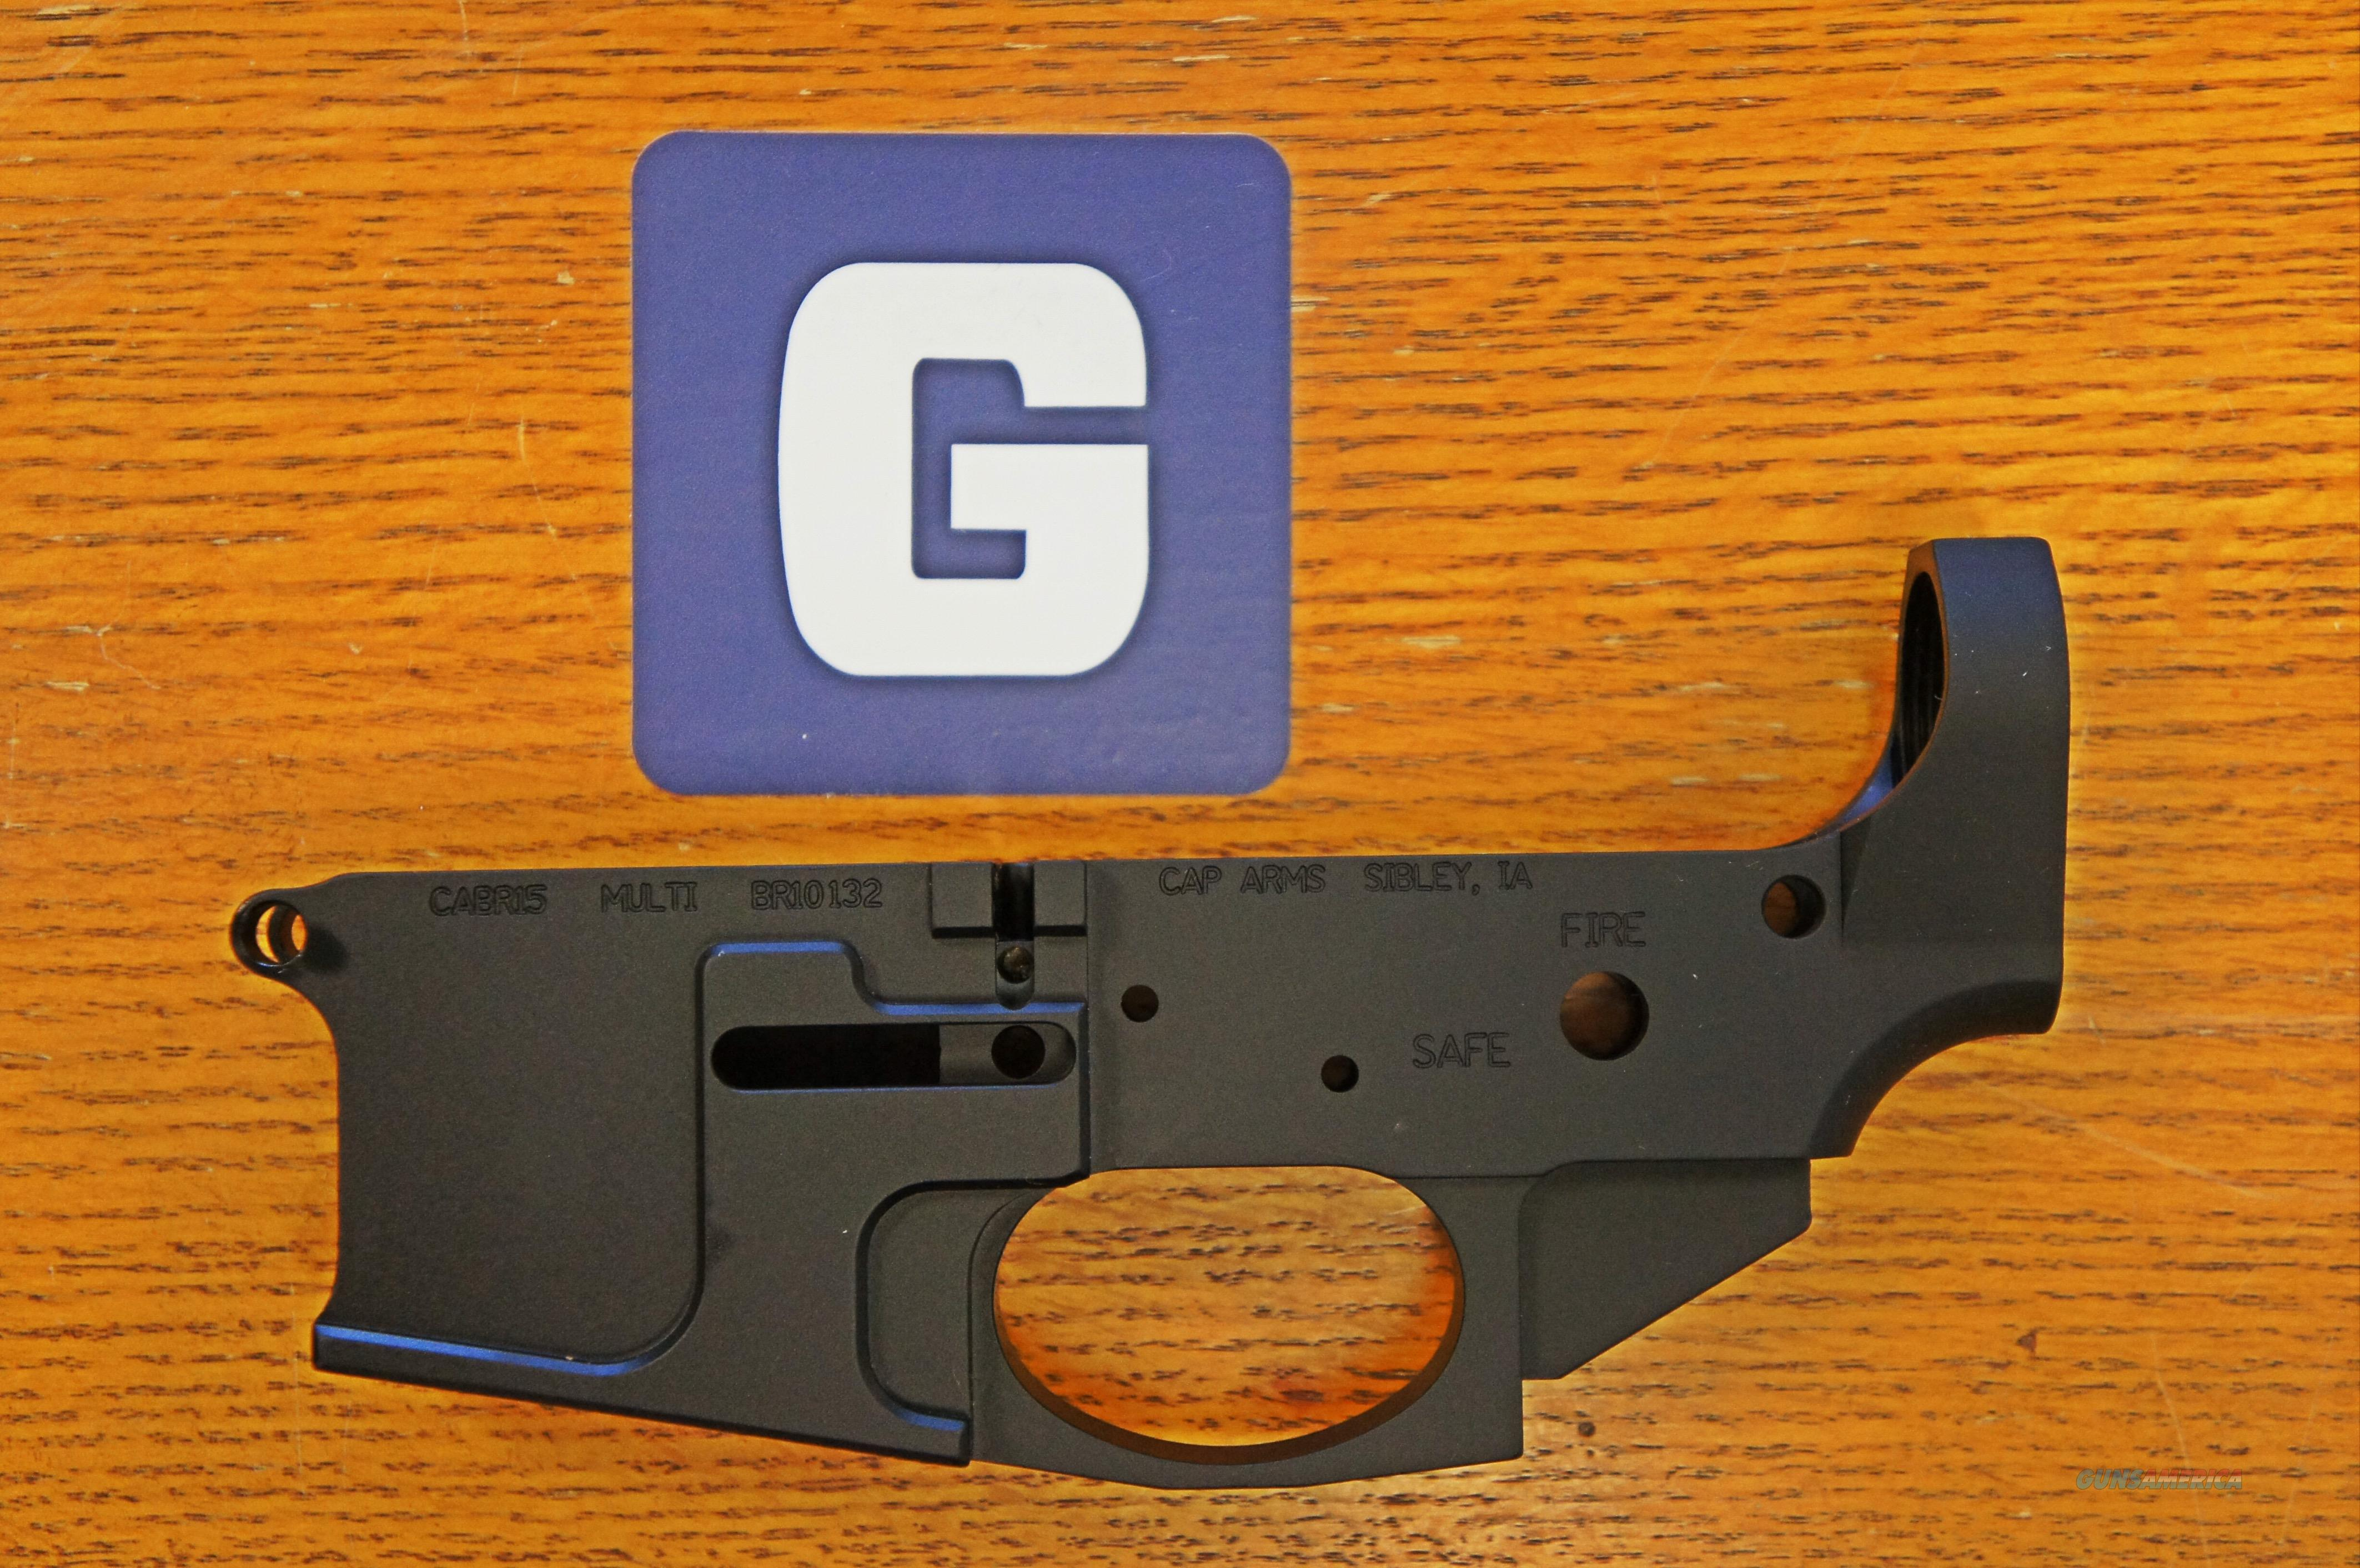 CapArms Billet AR15 Lower  Guns > Rifles > AR-15 Rifles - Small Manufacturers > Lower Only